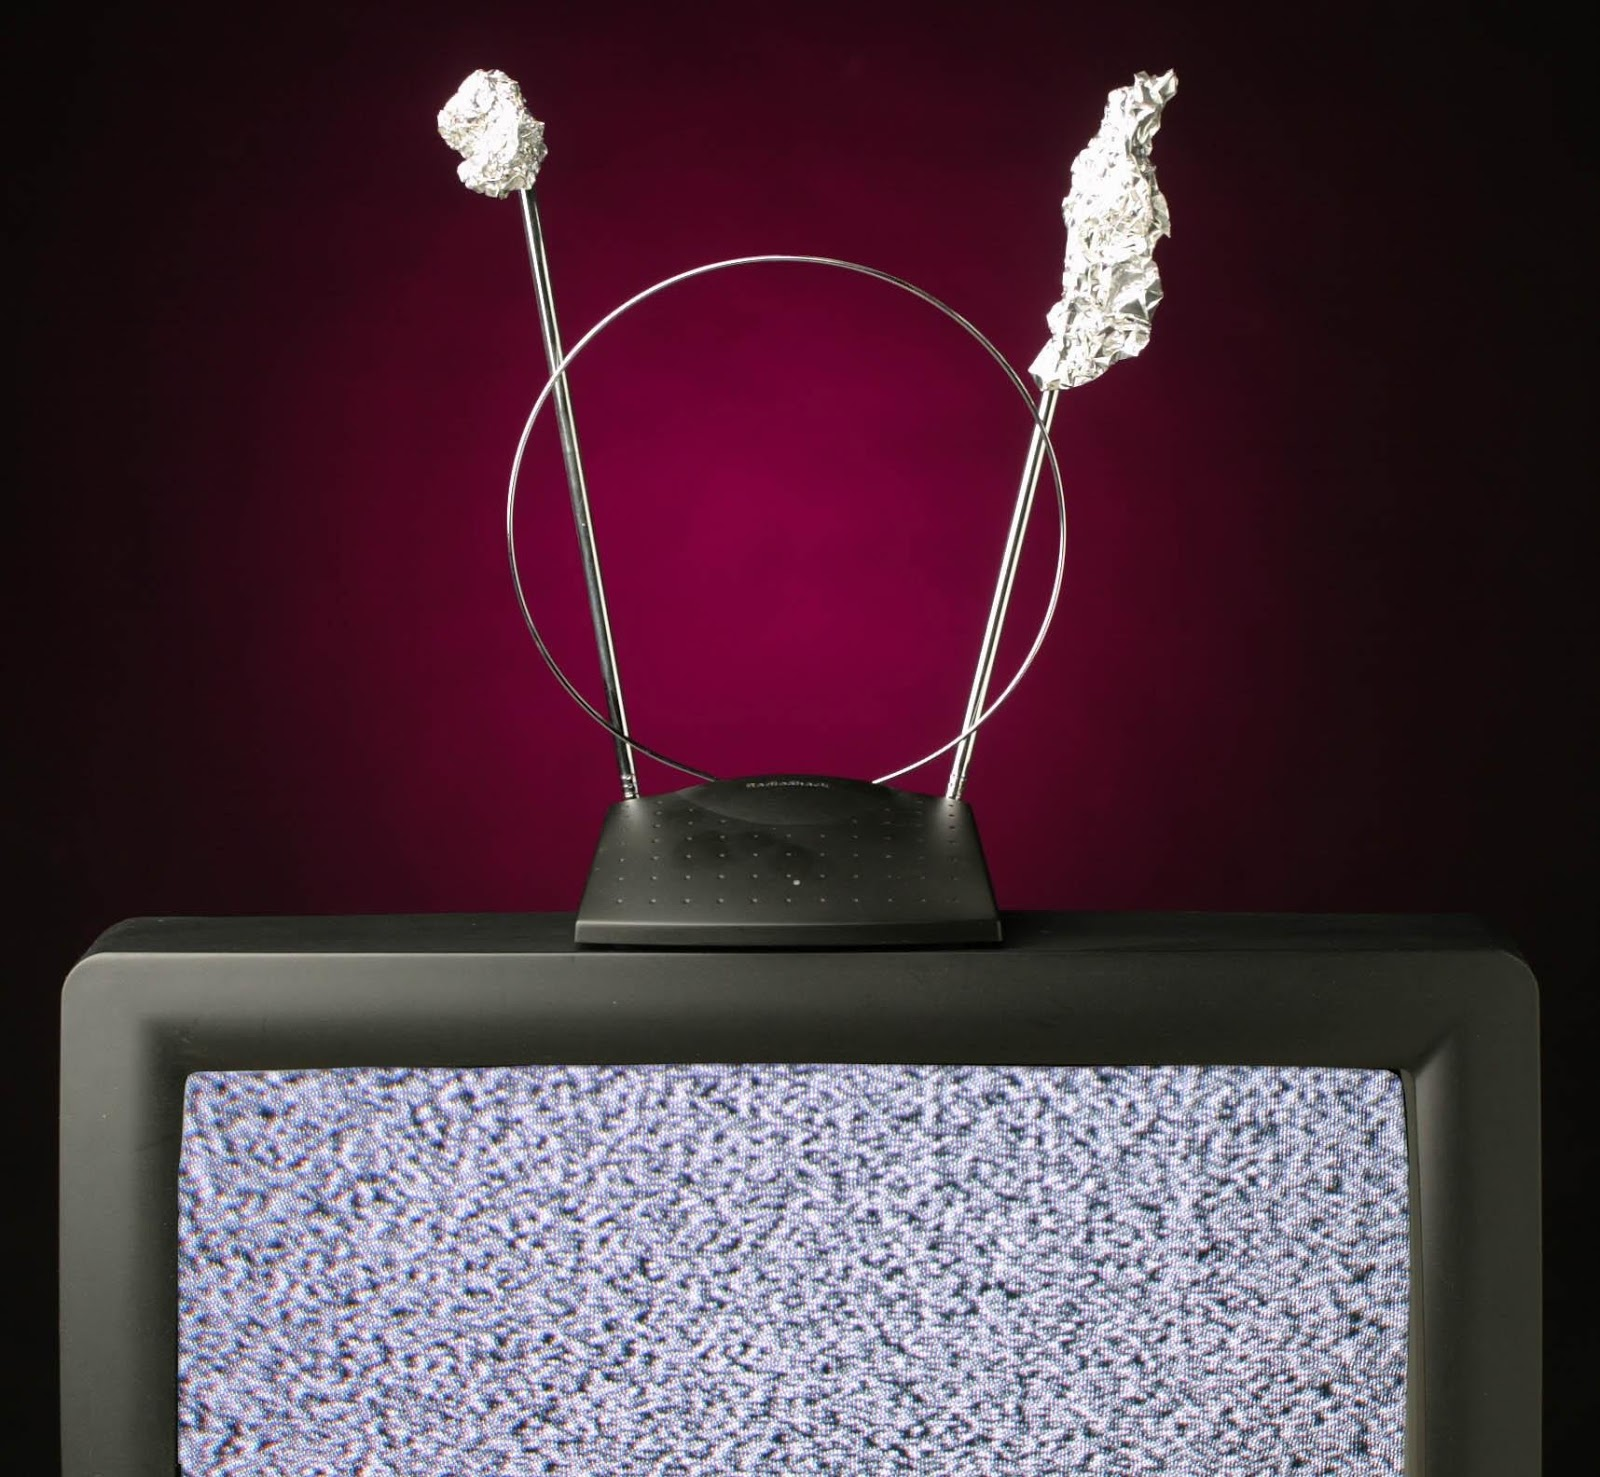 What Is Driving The Fcc Auction Of Tv Spectrum